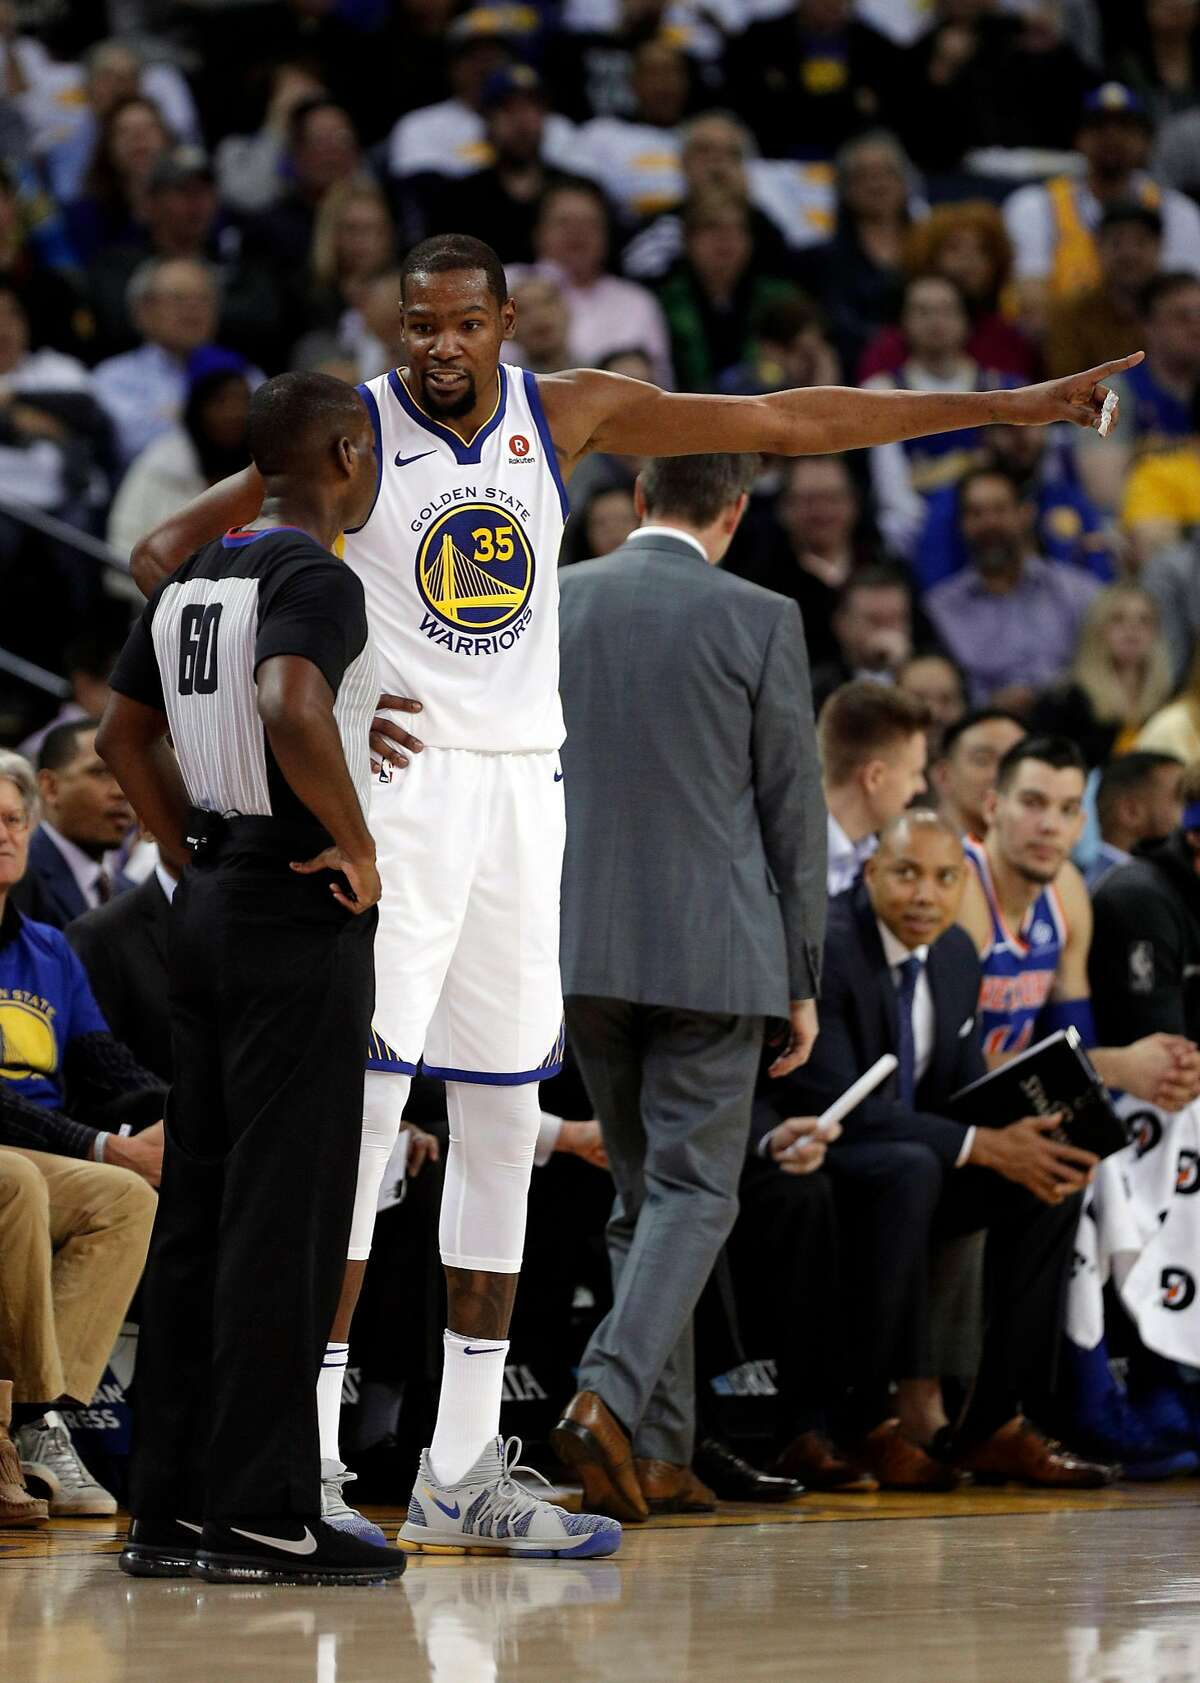 Kevin Durant (35) talks with referee James Williams (60) after he was called for a foul in the first half as the Golden State Warriors played the New York Knicks at Oracle Arena in Oakland, Calif., on Tuesday, January 23, 2018.